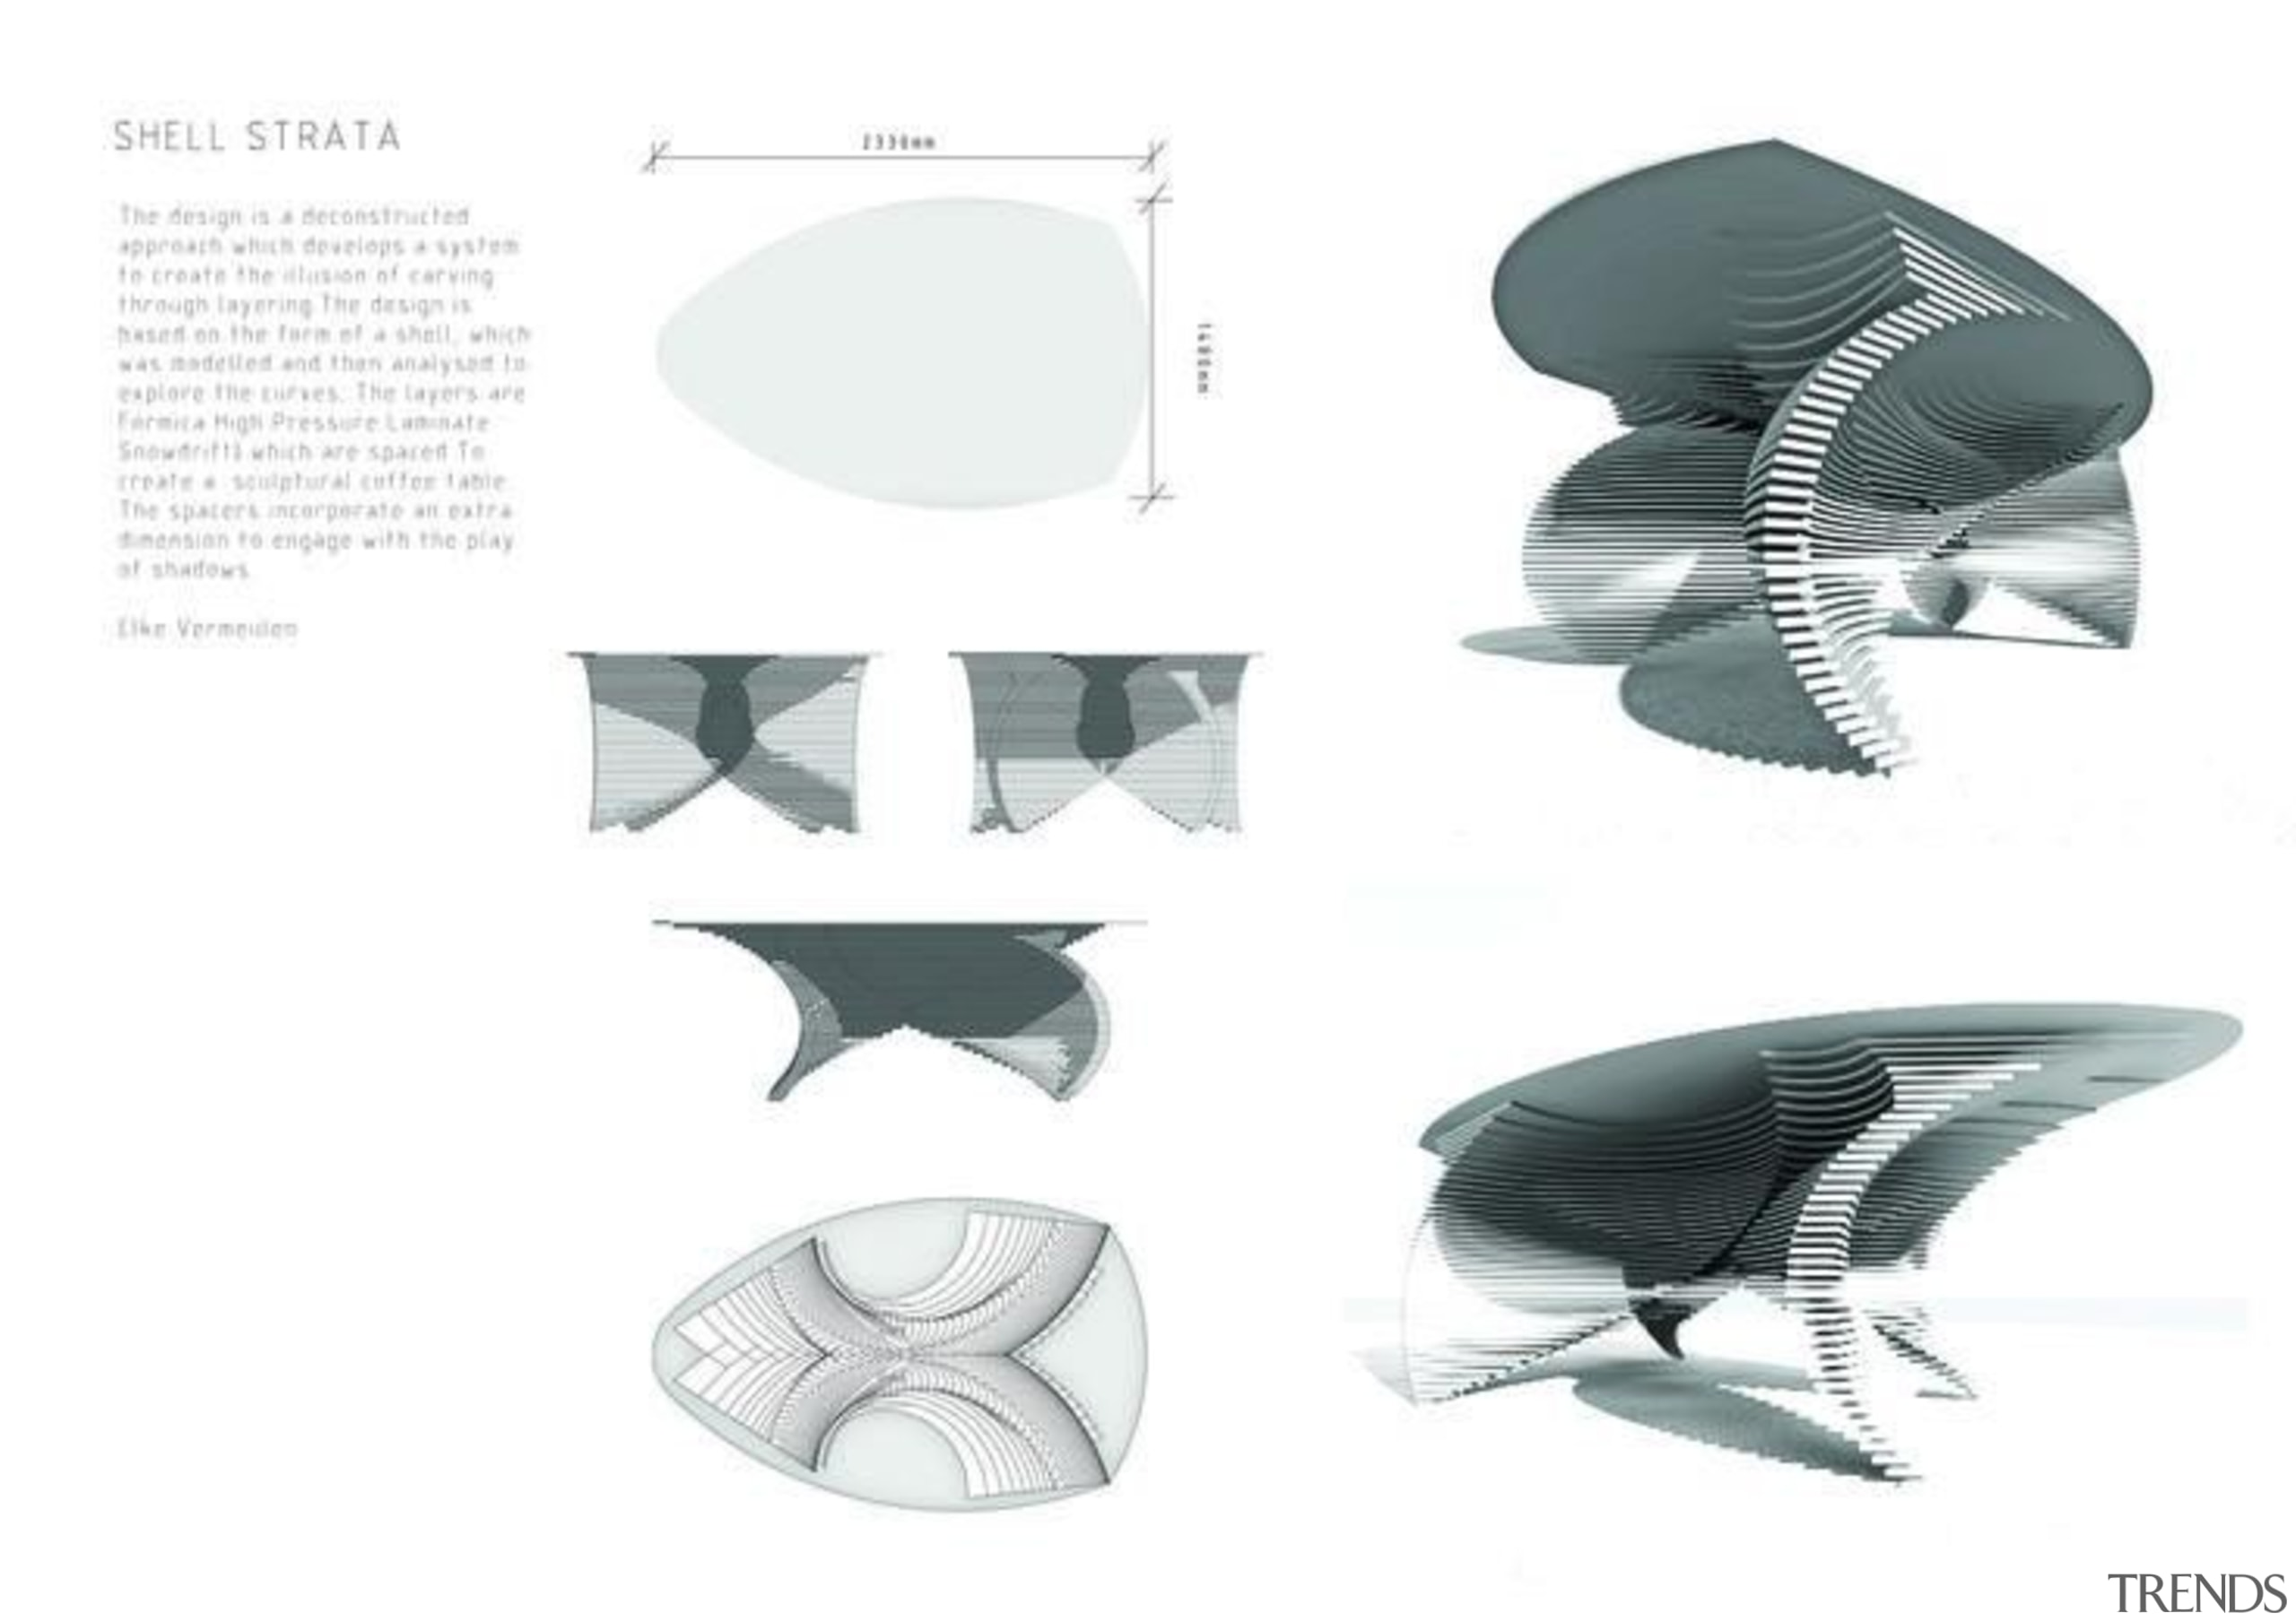 by Elke Vermeulen - Shell Strata - automotive automotive design, design, font, line, product, product design, white